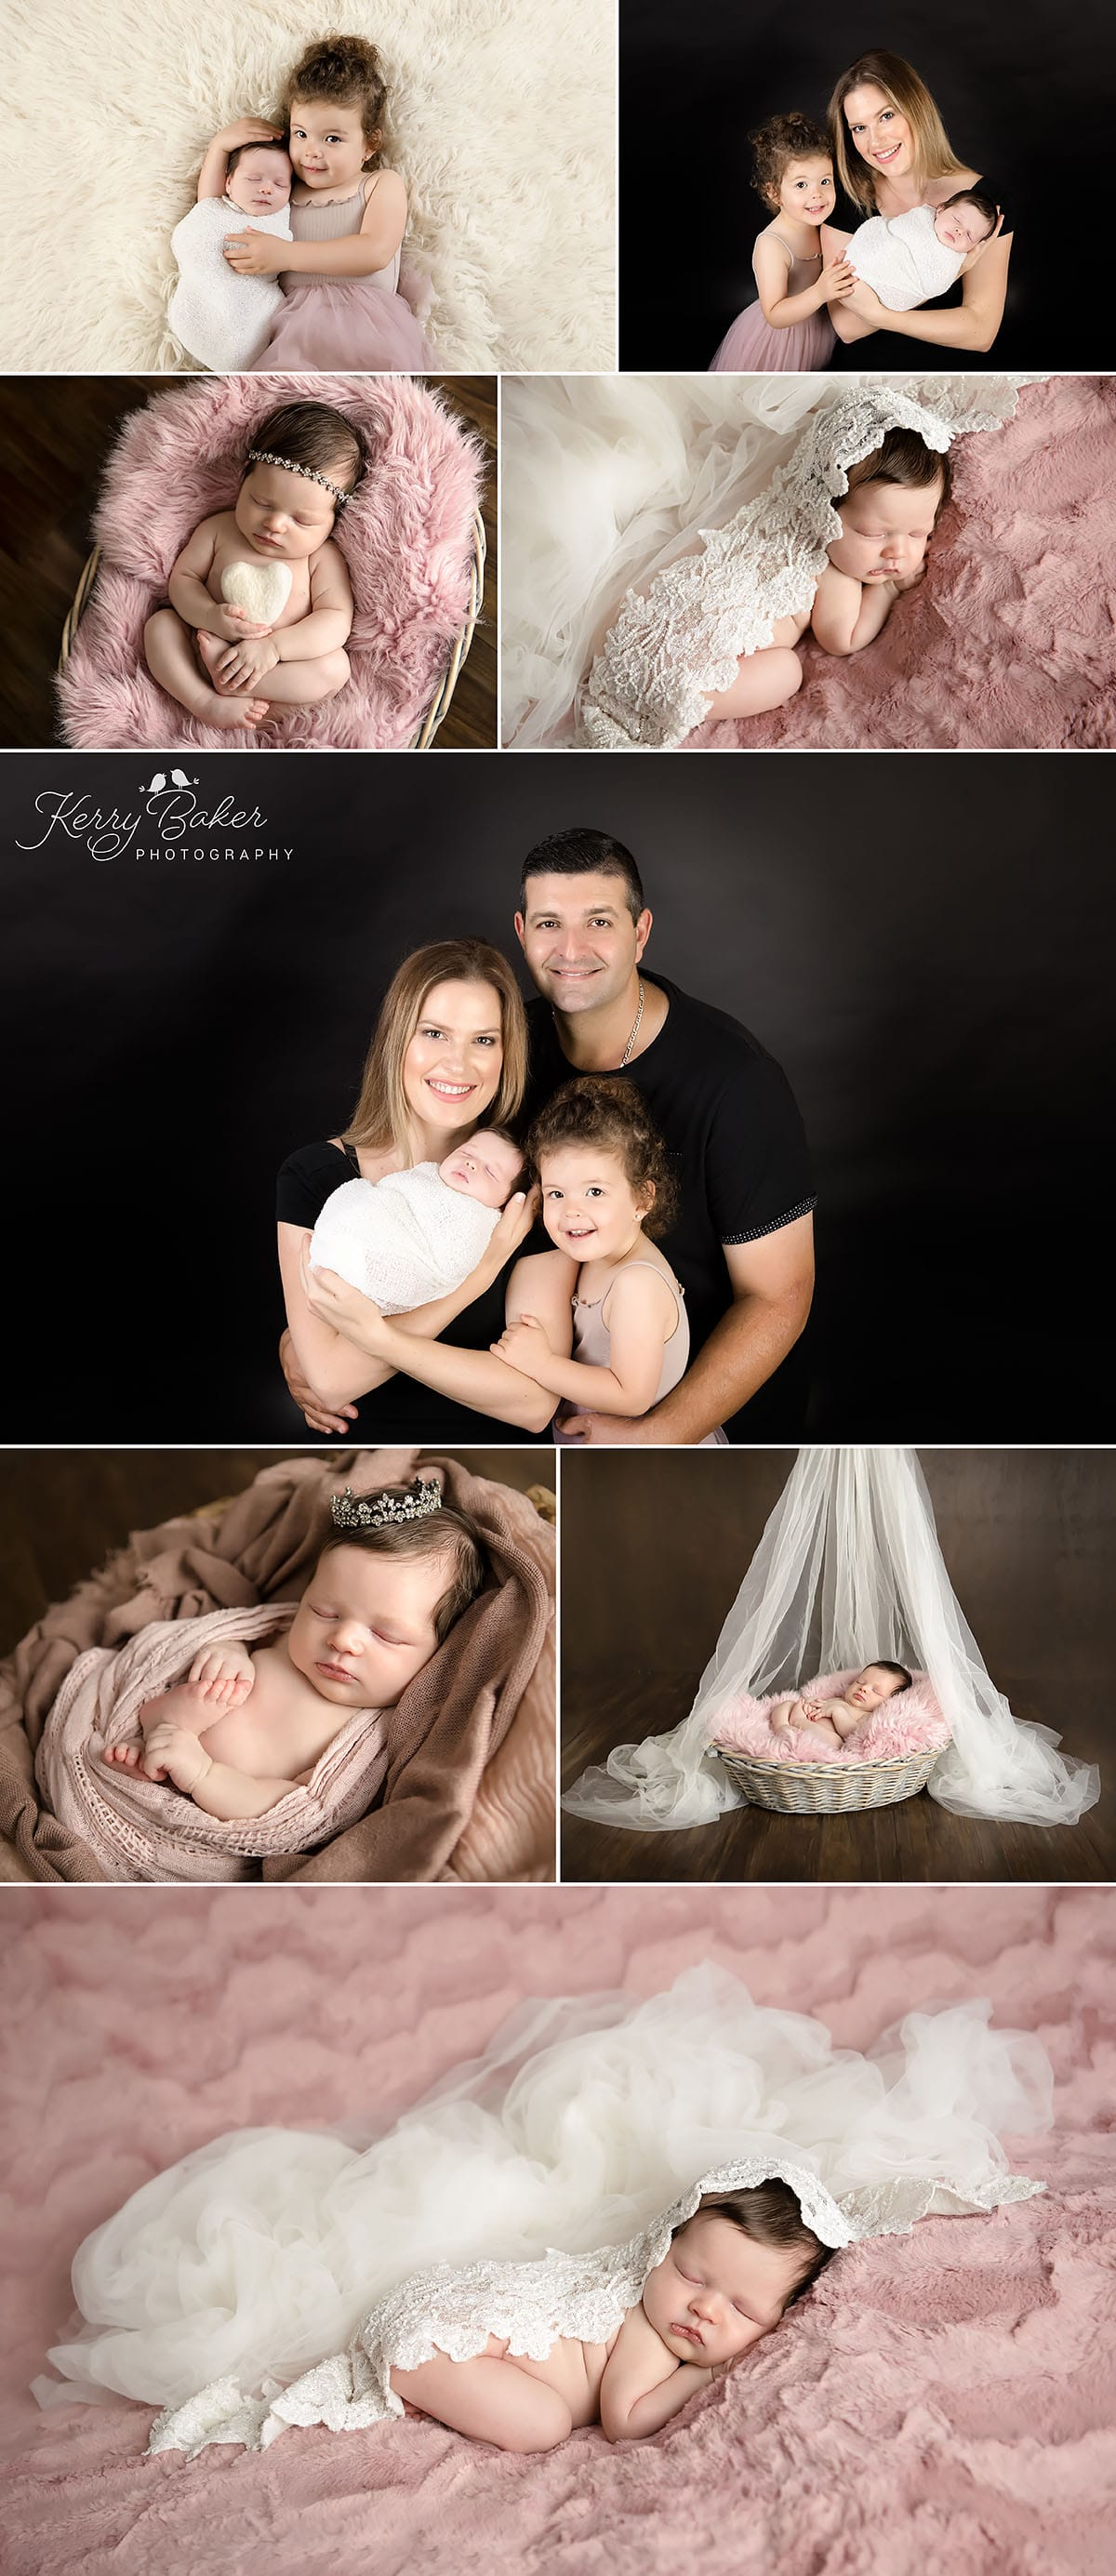 Newborn baby posed with bridal wedding veil Family and Sibling photos Perth